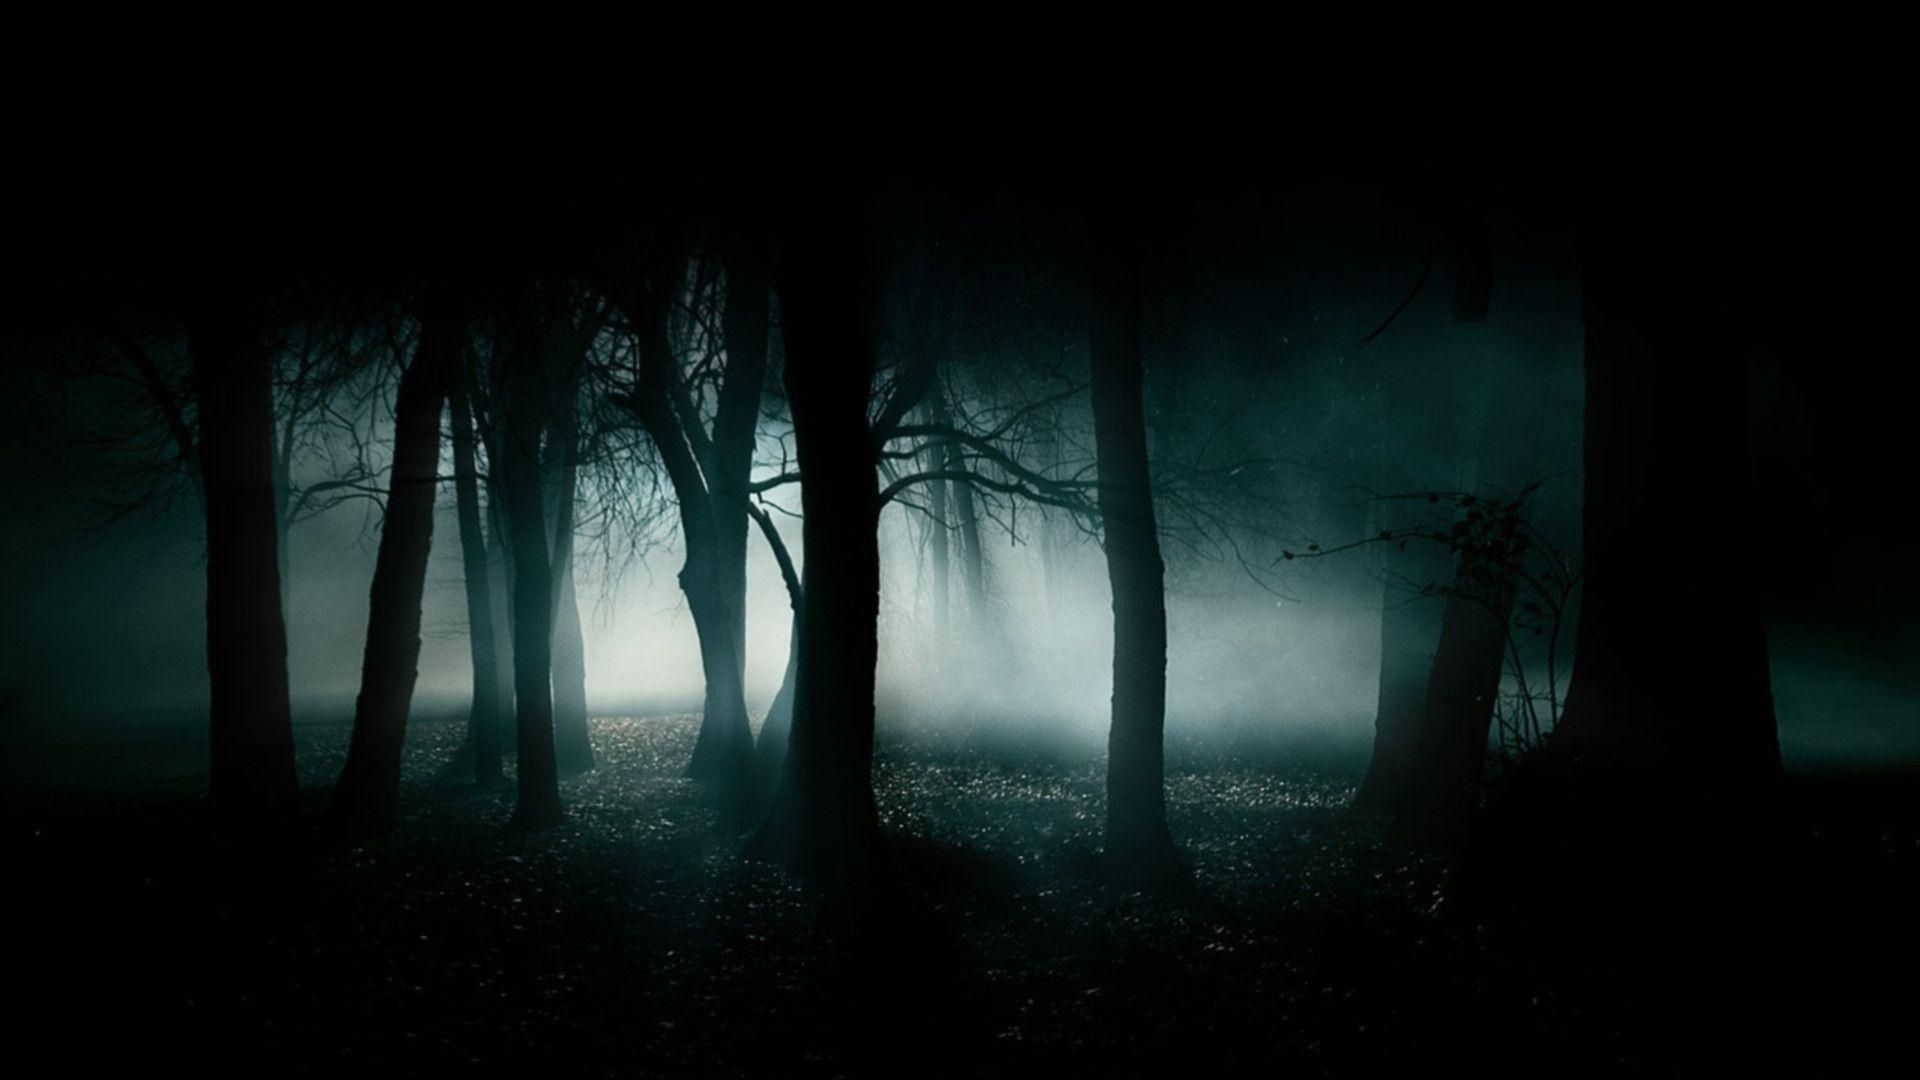 10 Top Dark Hd Wallpapers 1920x1080 Full Hd 1920 1080 For Pc Desktop Haunted Forest Forest Wallpaper Dark Wallpaper